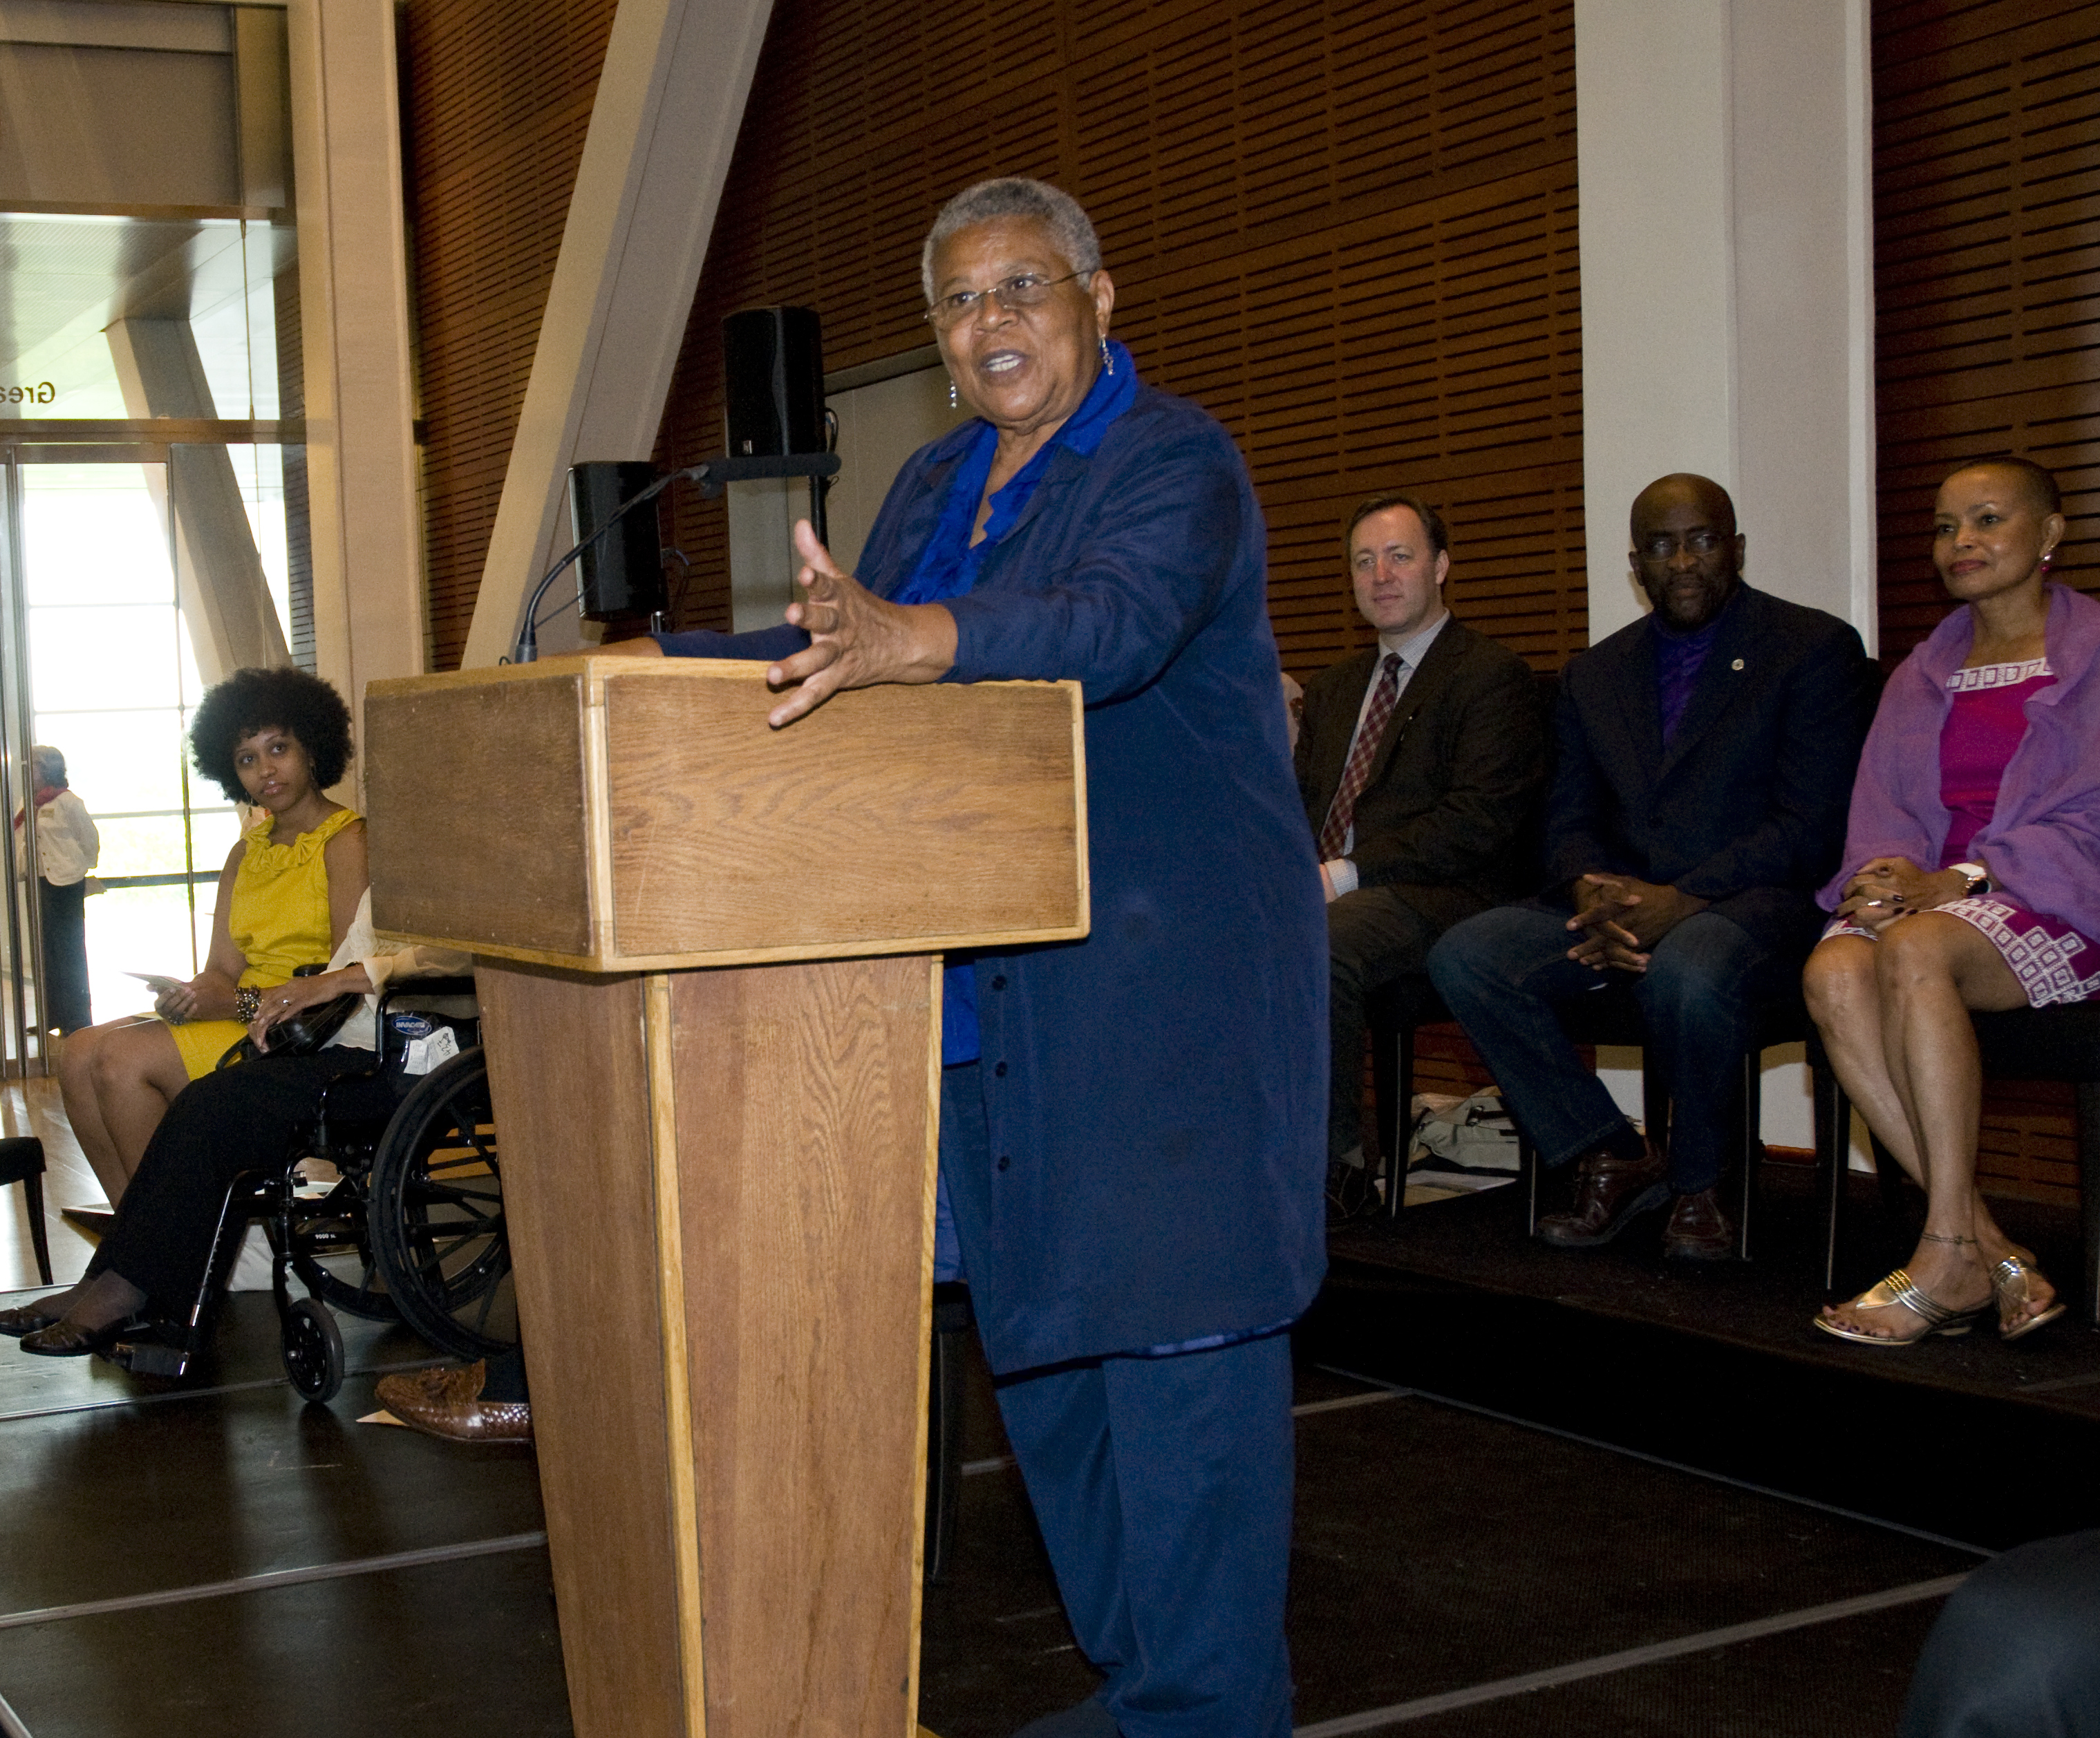 Minnijean Brown Trickey, 2012 Arkansas Civil Rights Heritage Honoree